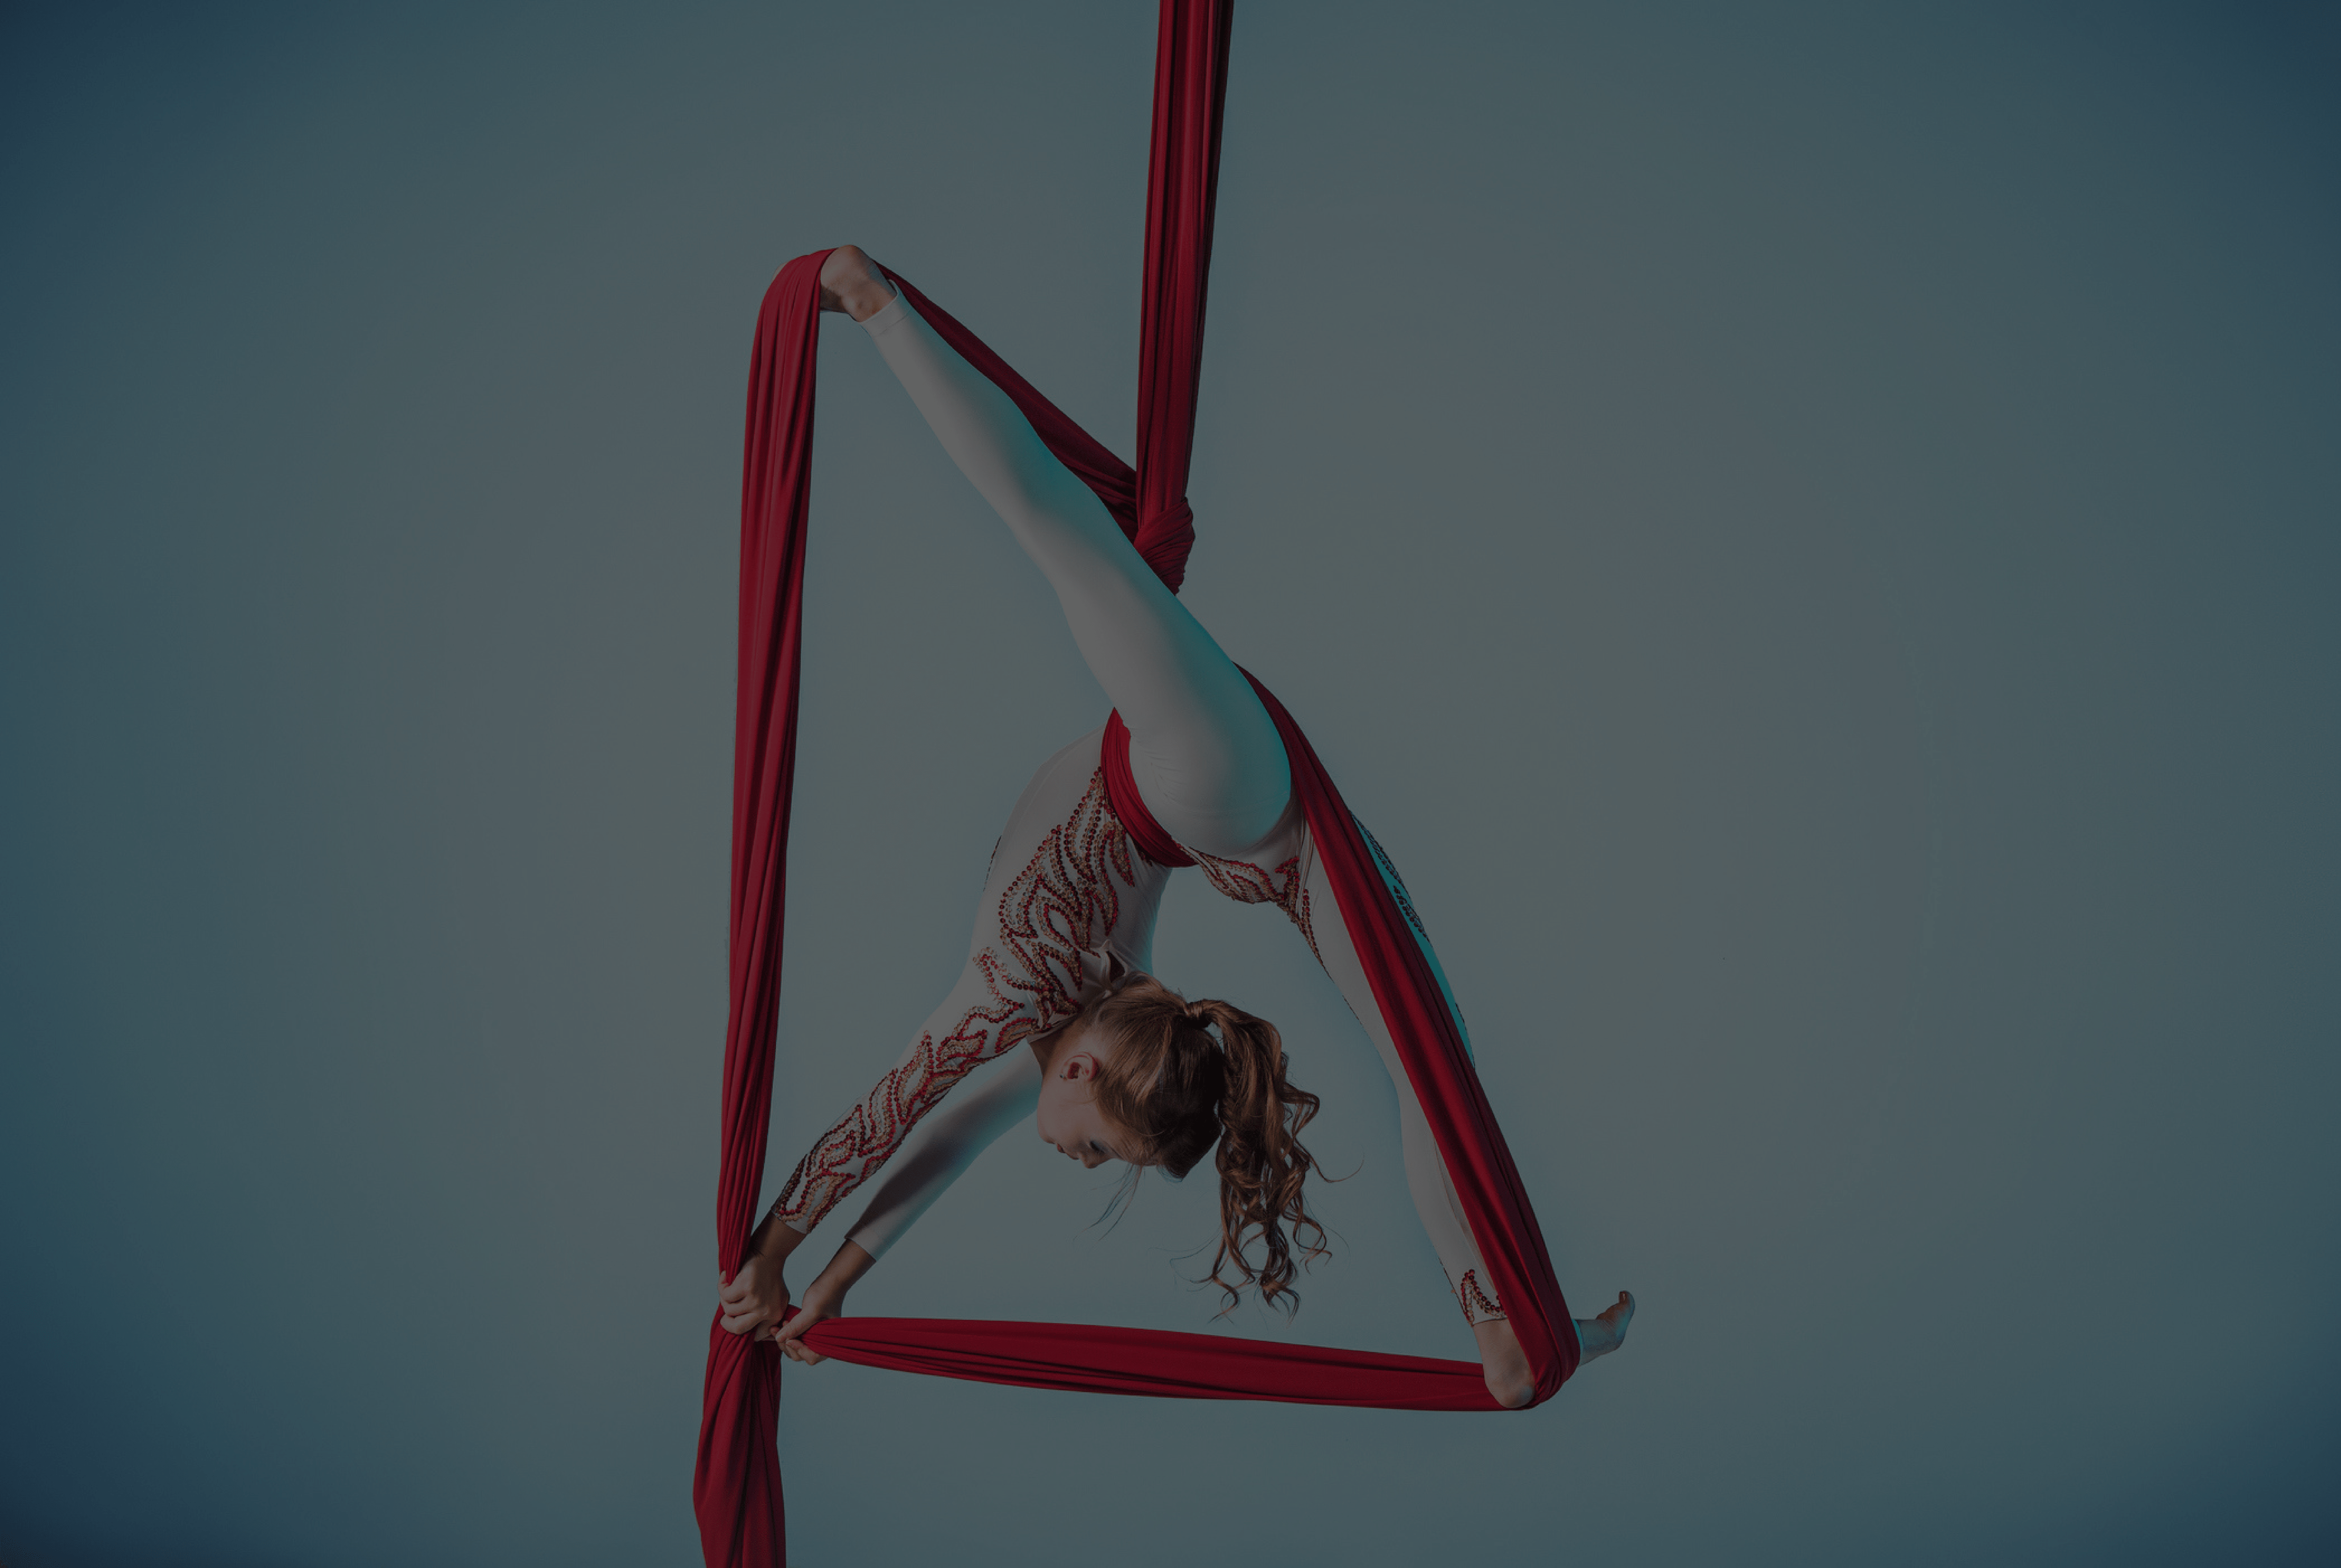 aerial arts insurance coverage